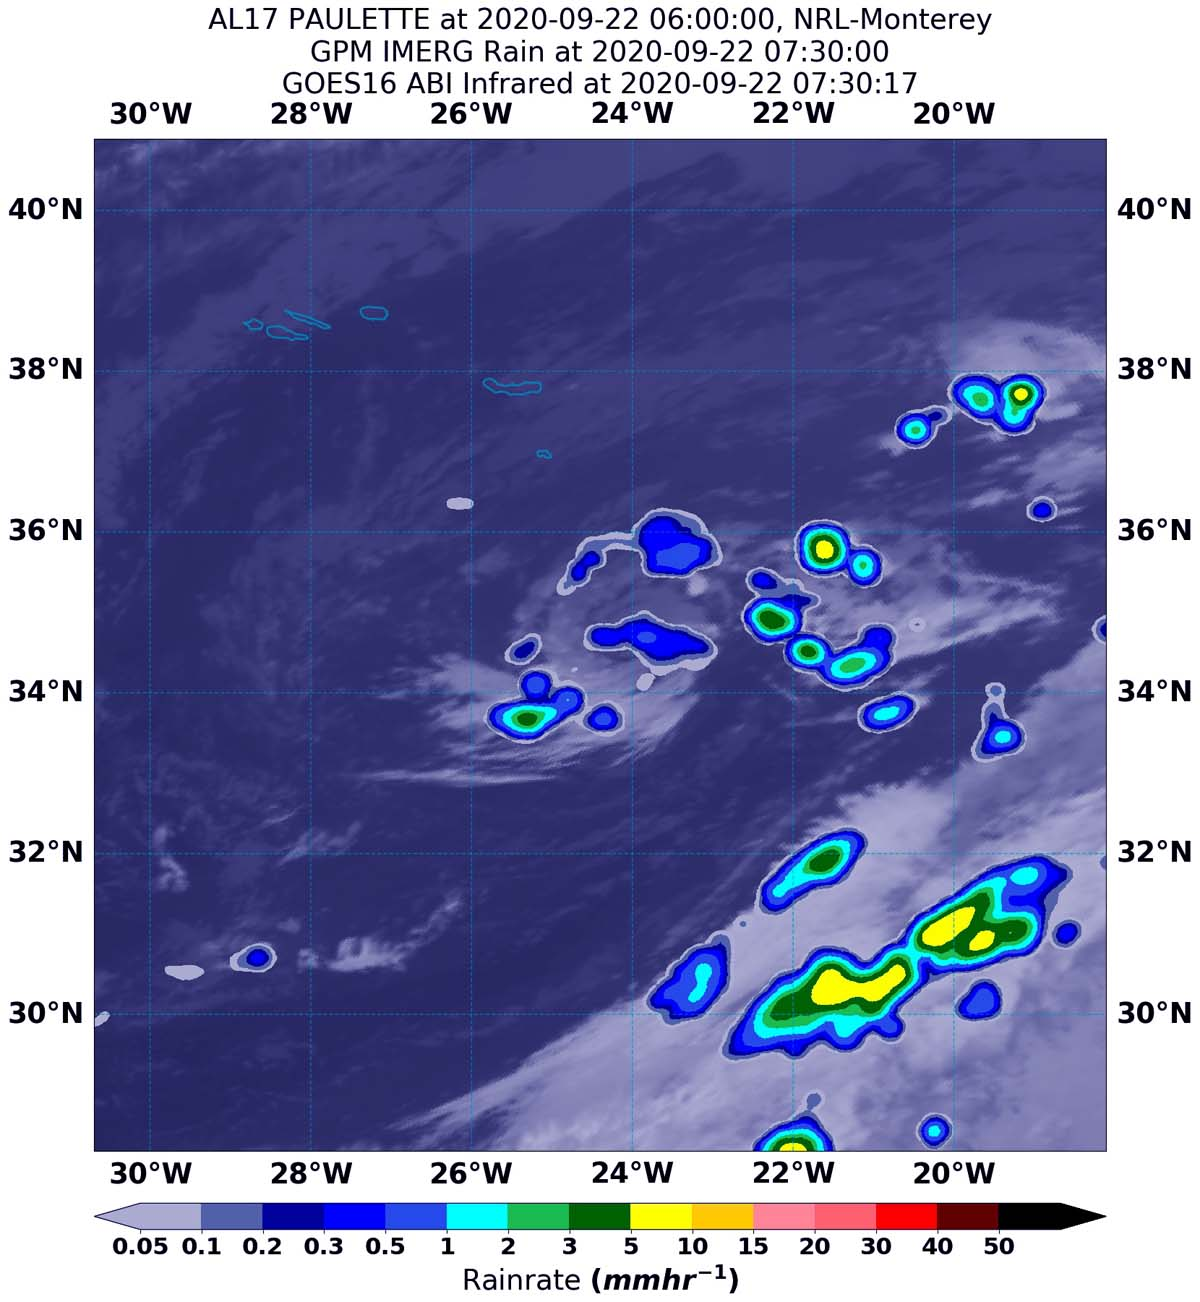 A map image with blue, green and yellow blotches indicating where rainfall was occuring during Paulette.